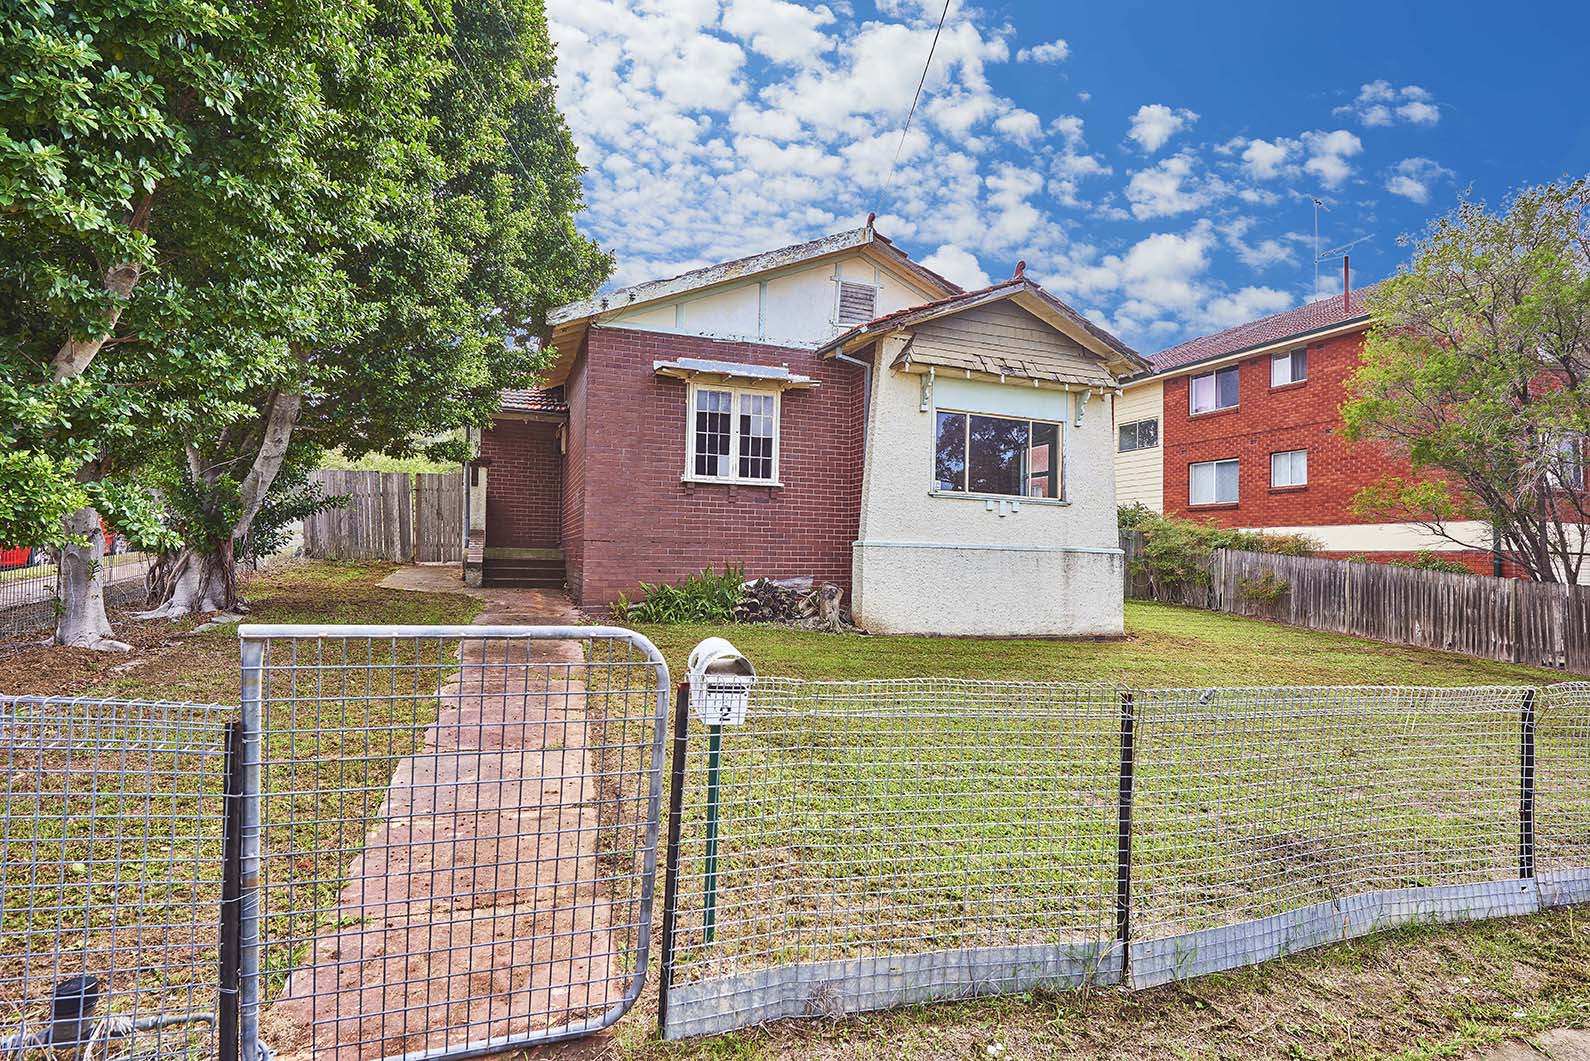 Sold for a record in Parramatta